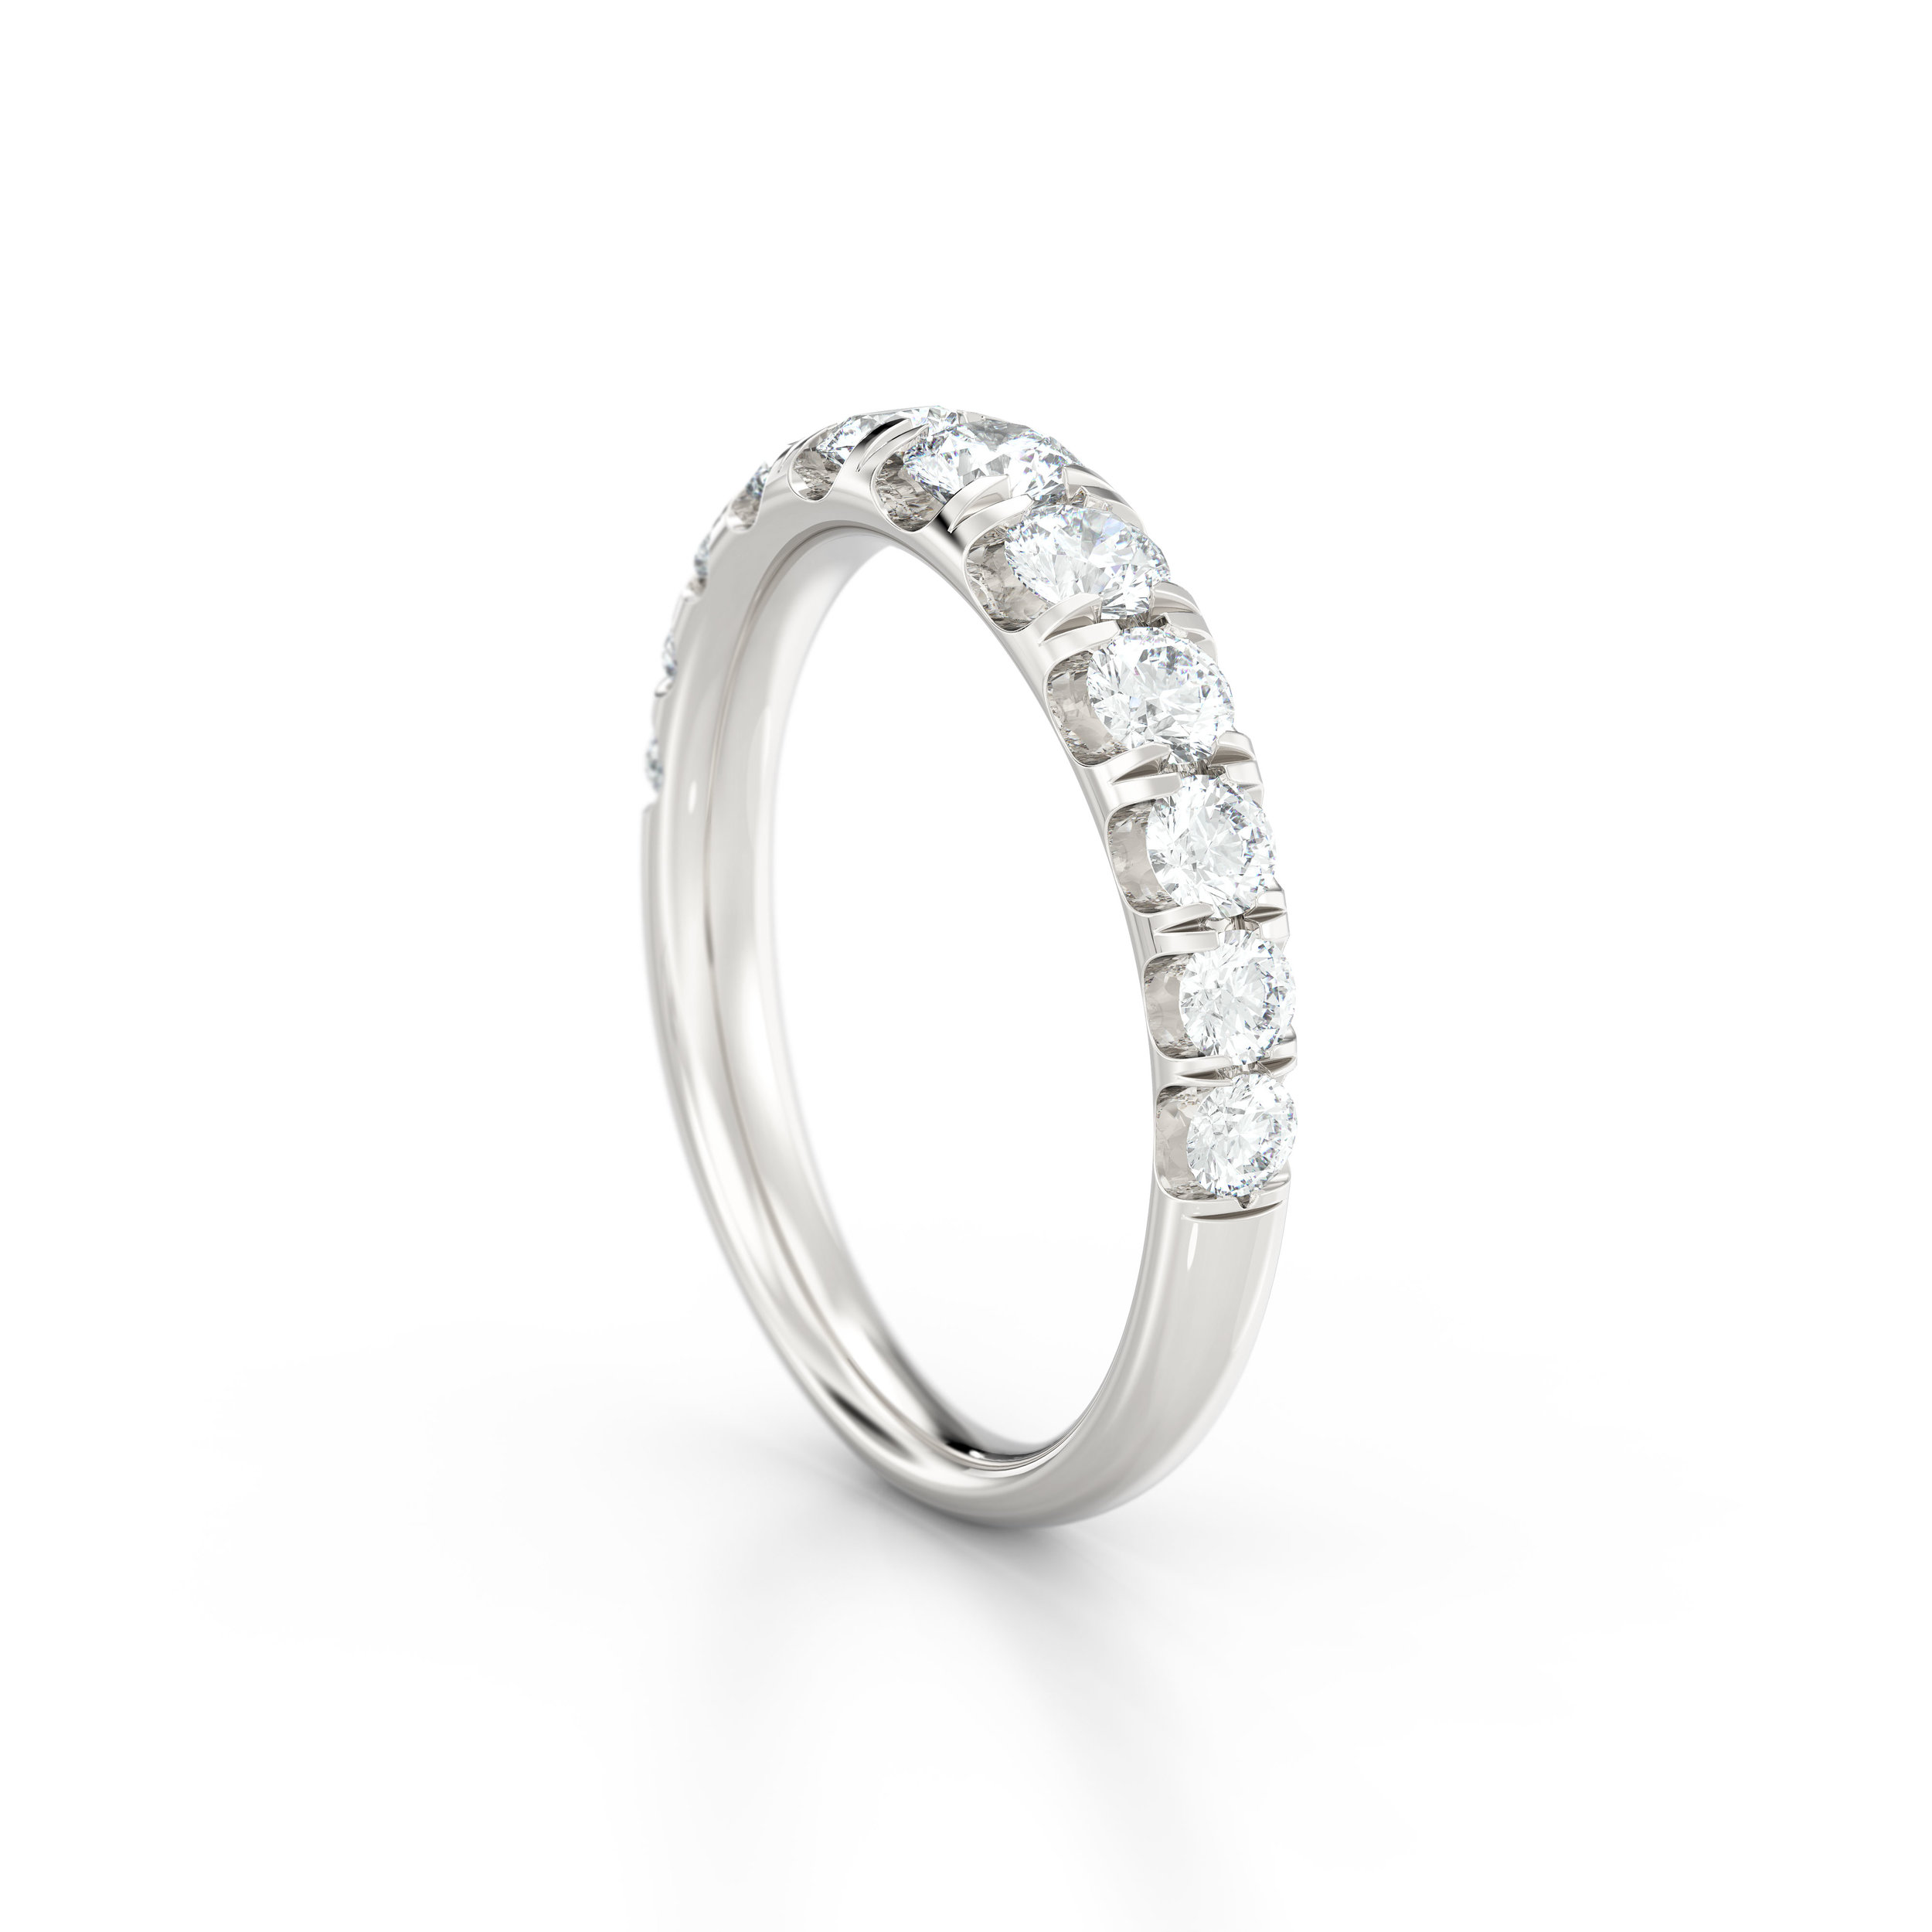 Tapering shared claw eternity ring